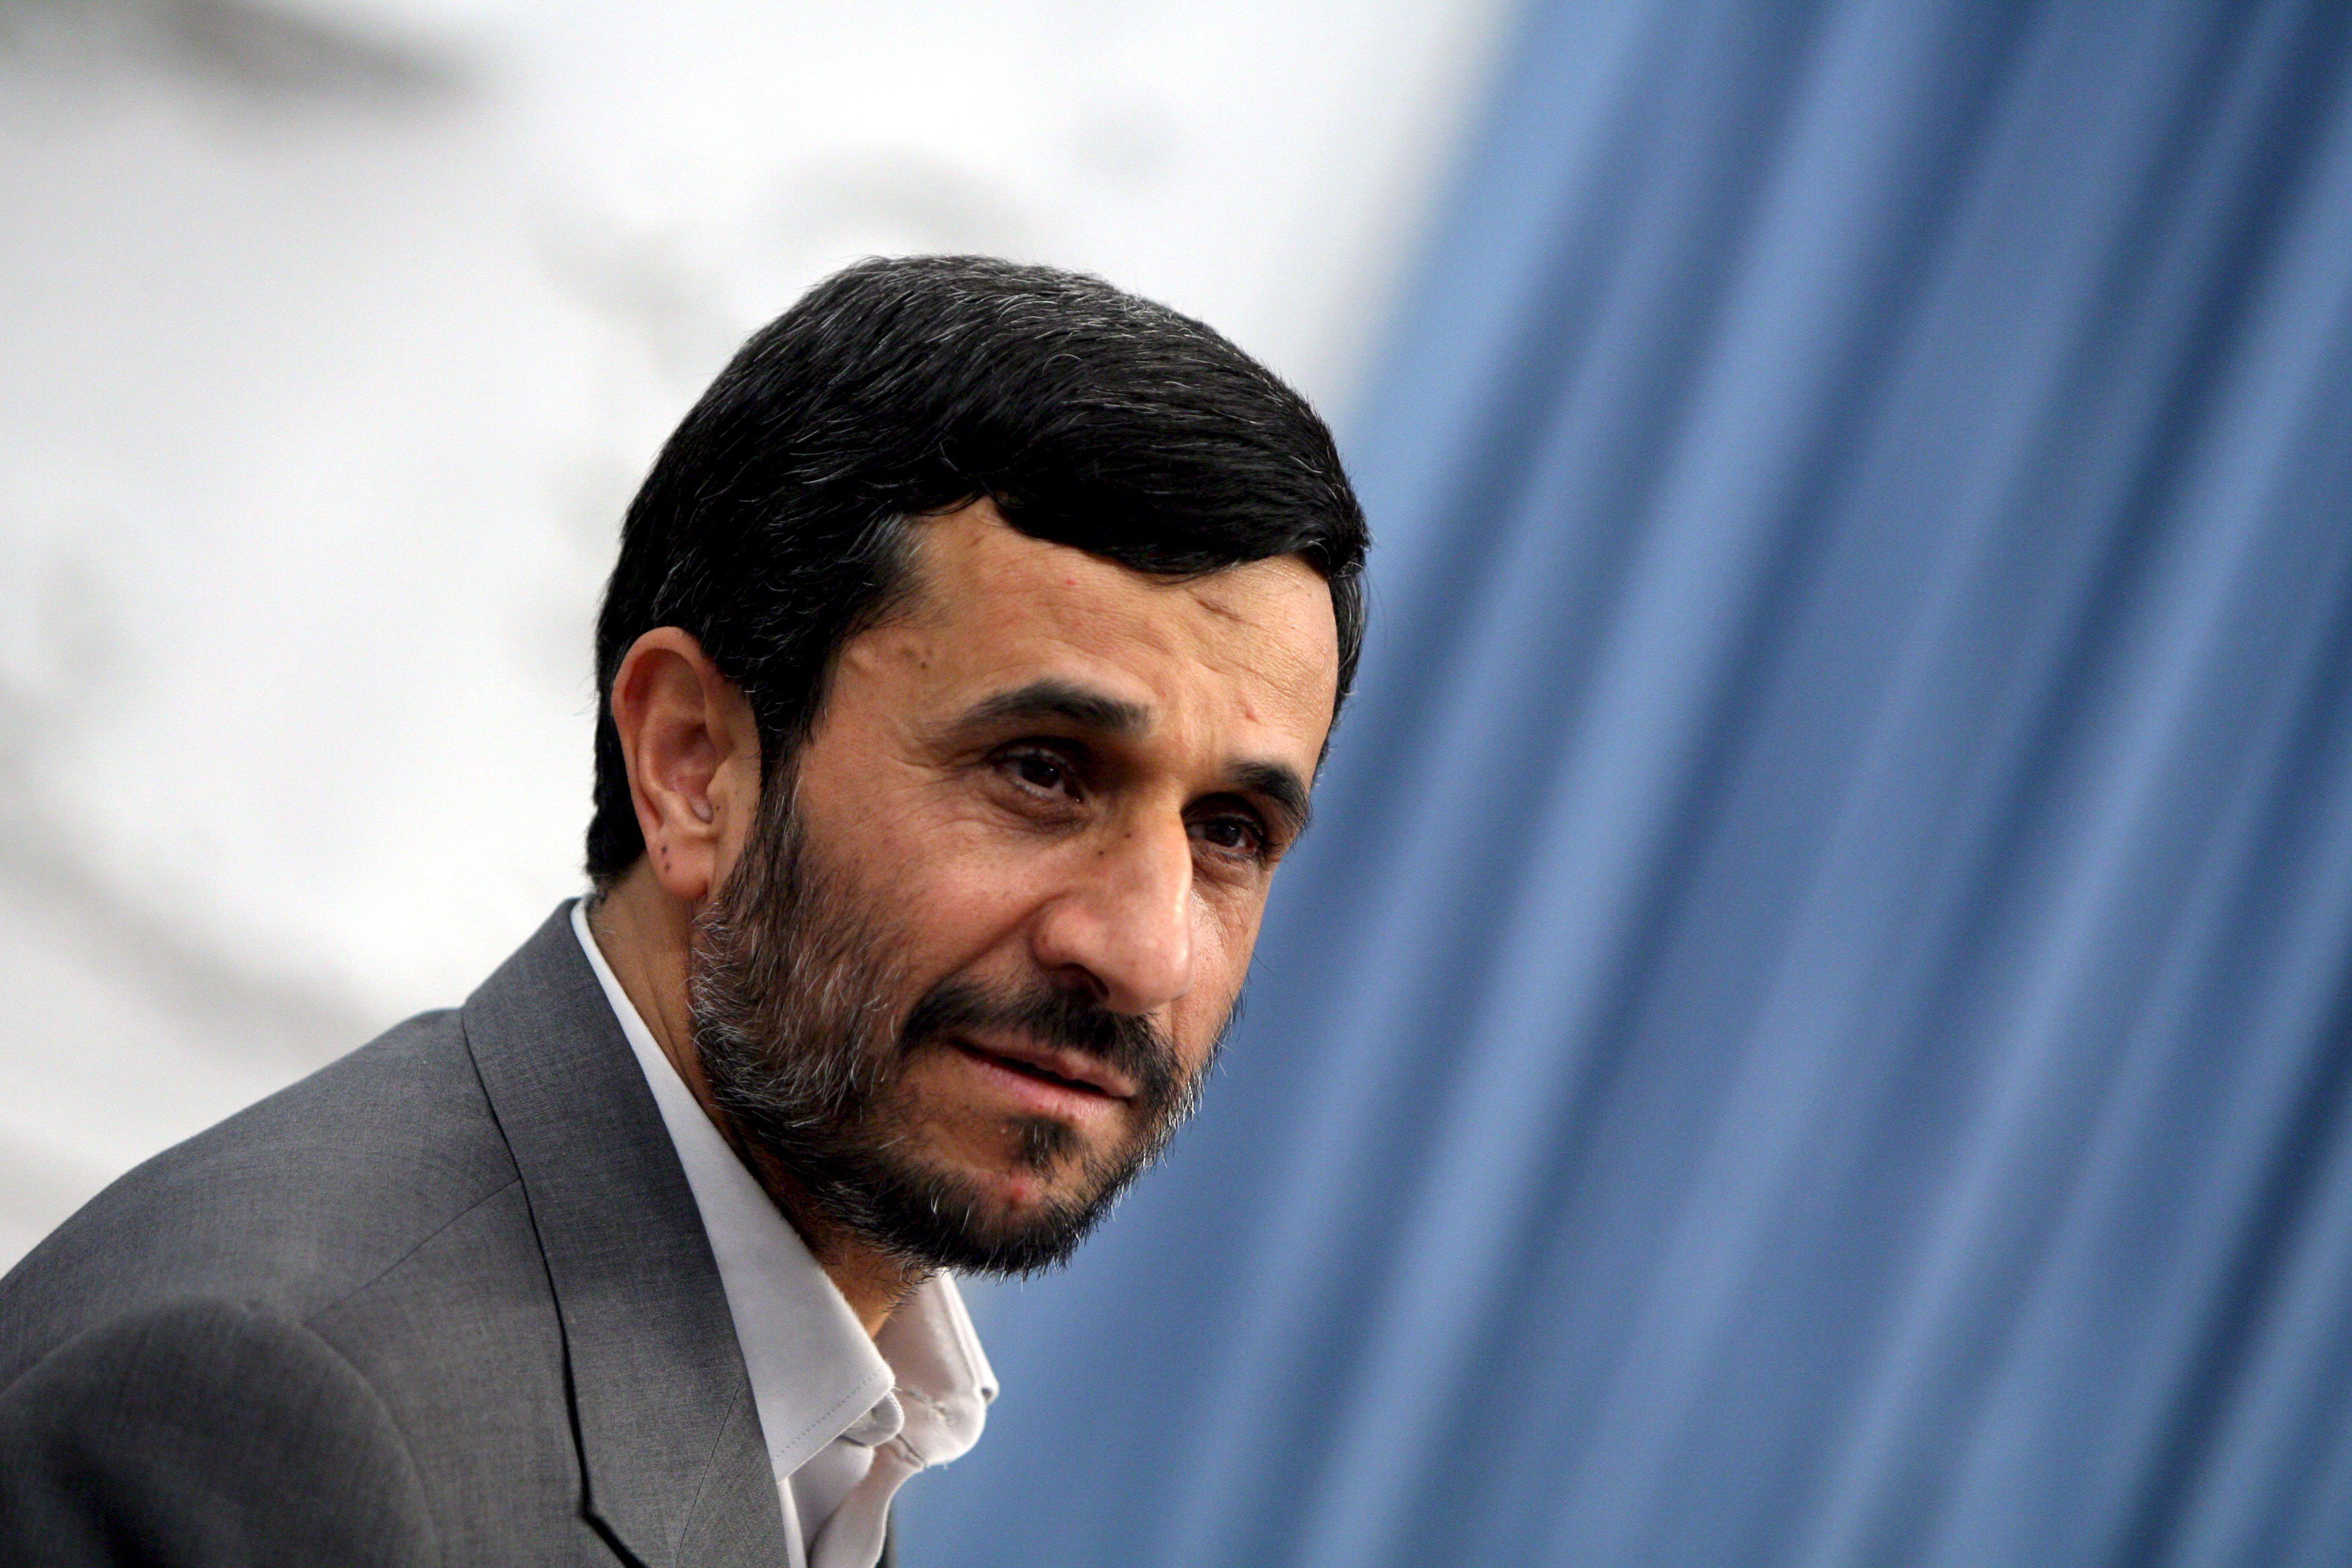 Iranian president Ahmadinejad in his office